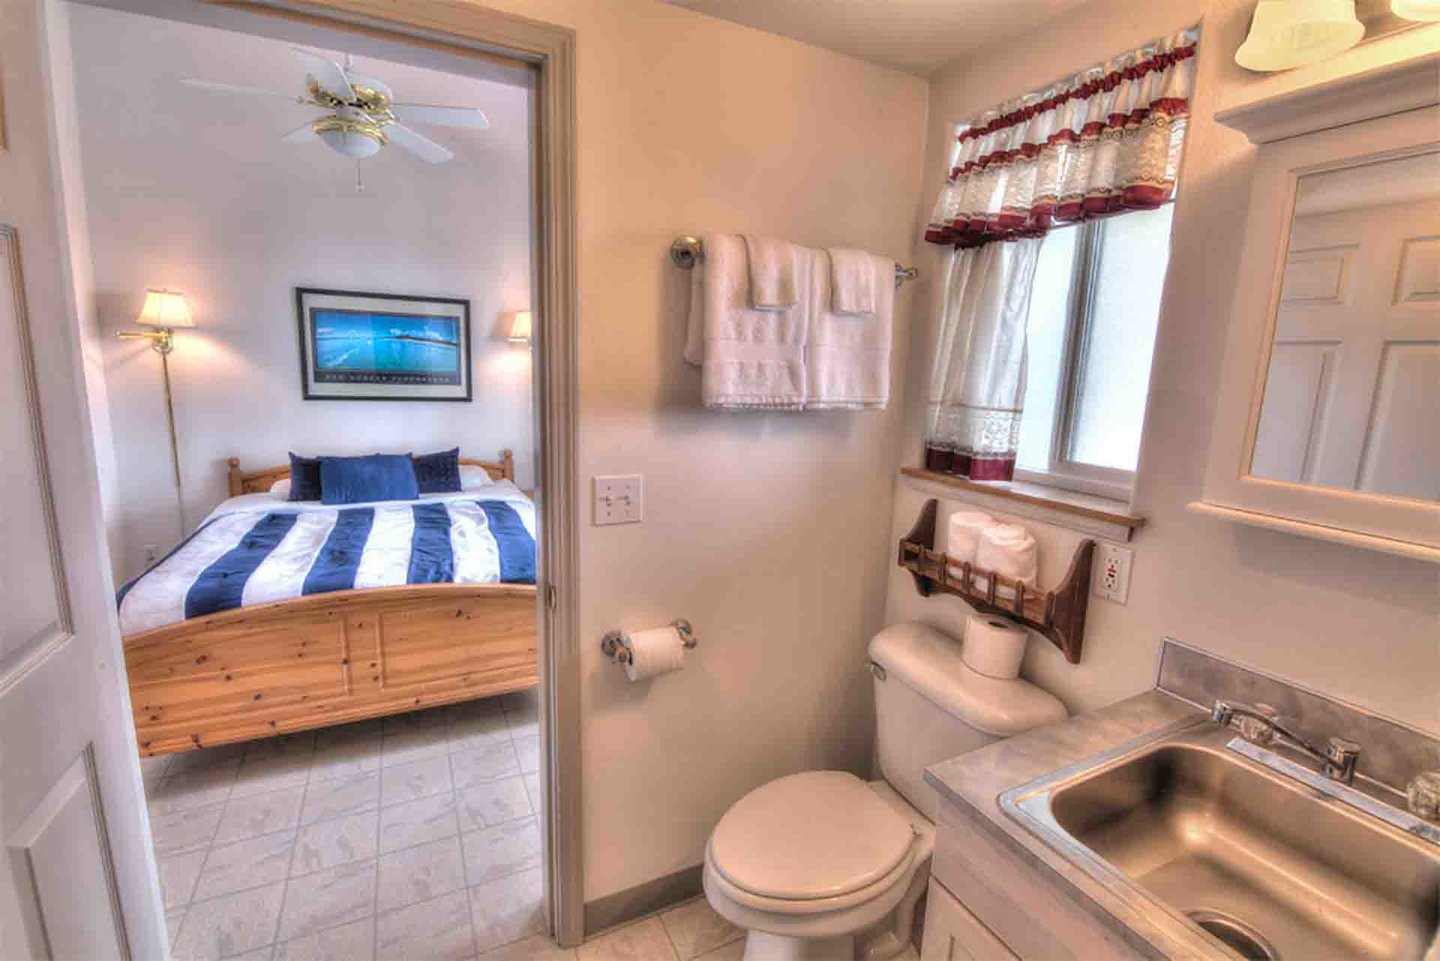 A convenient and clean bath attached to one of the bedrooms.